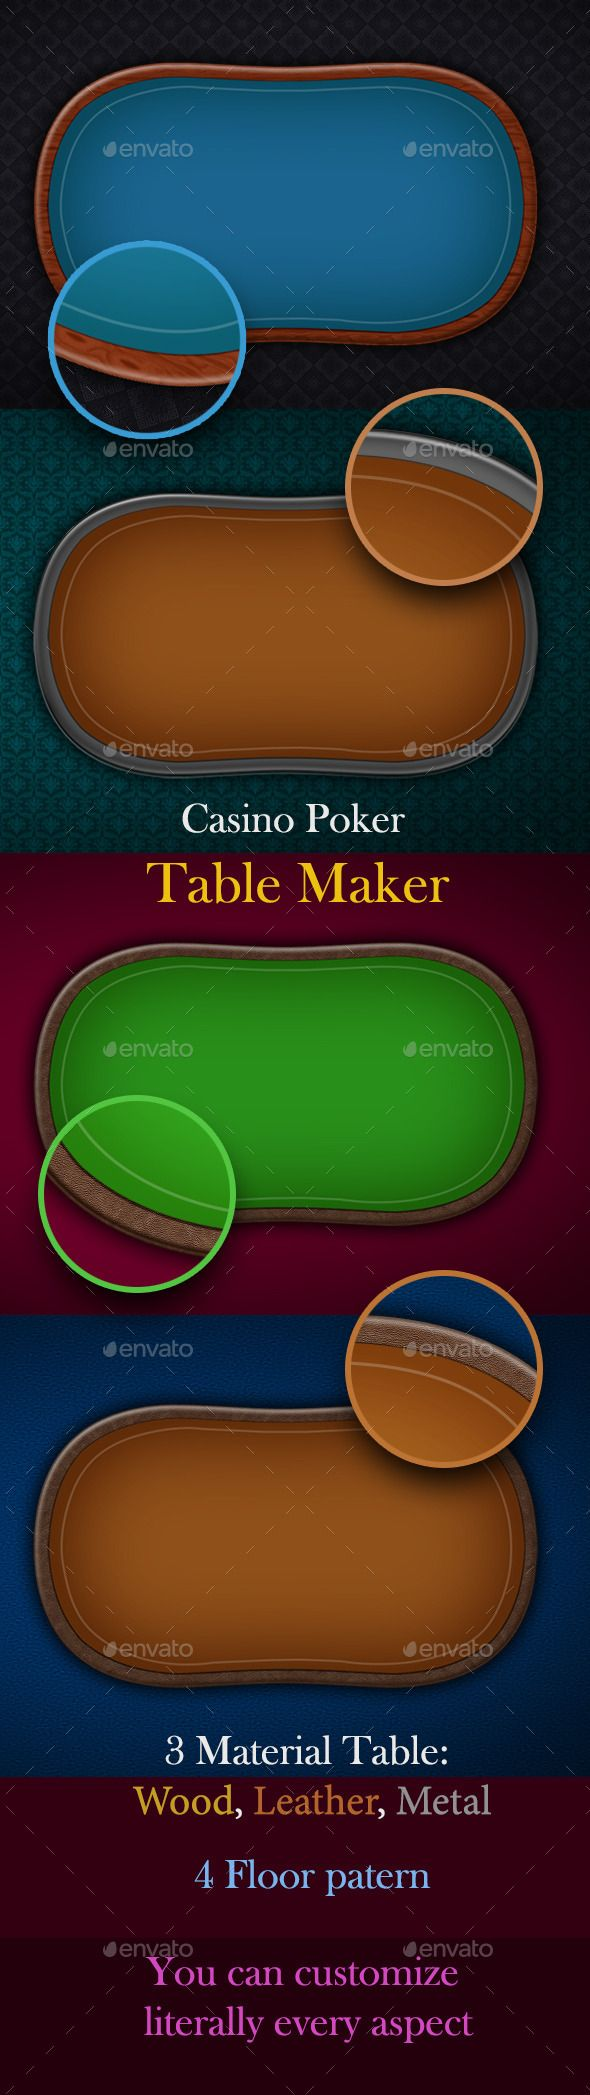 Casino Poker Table Maker (Backgrounds)